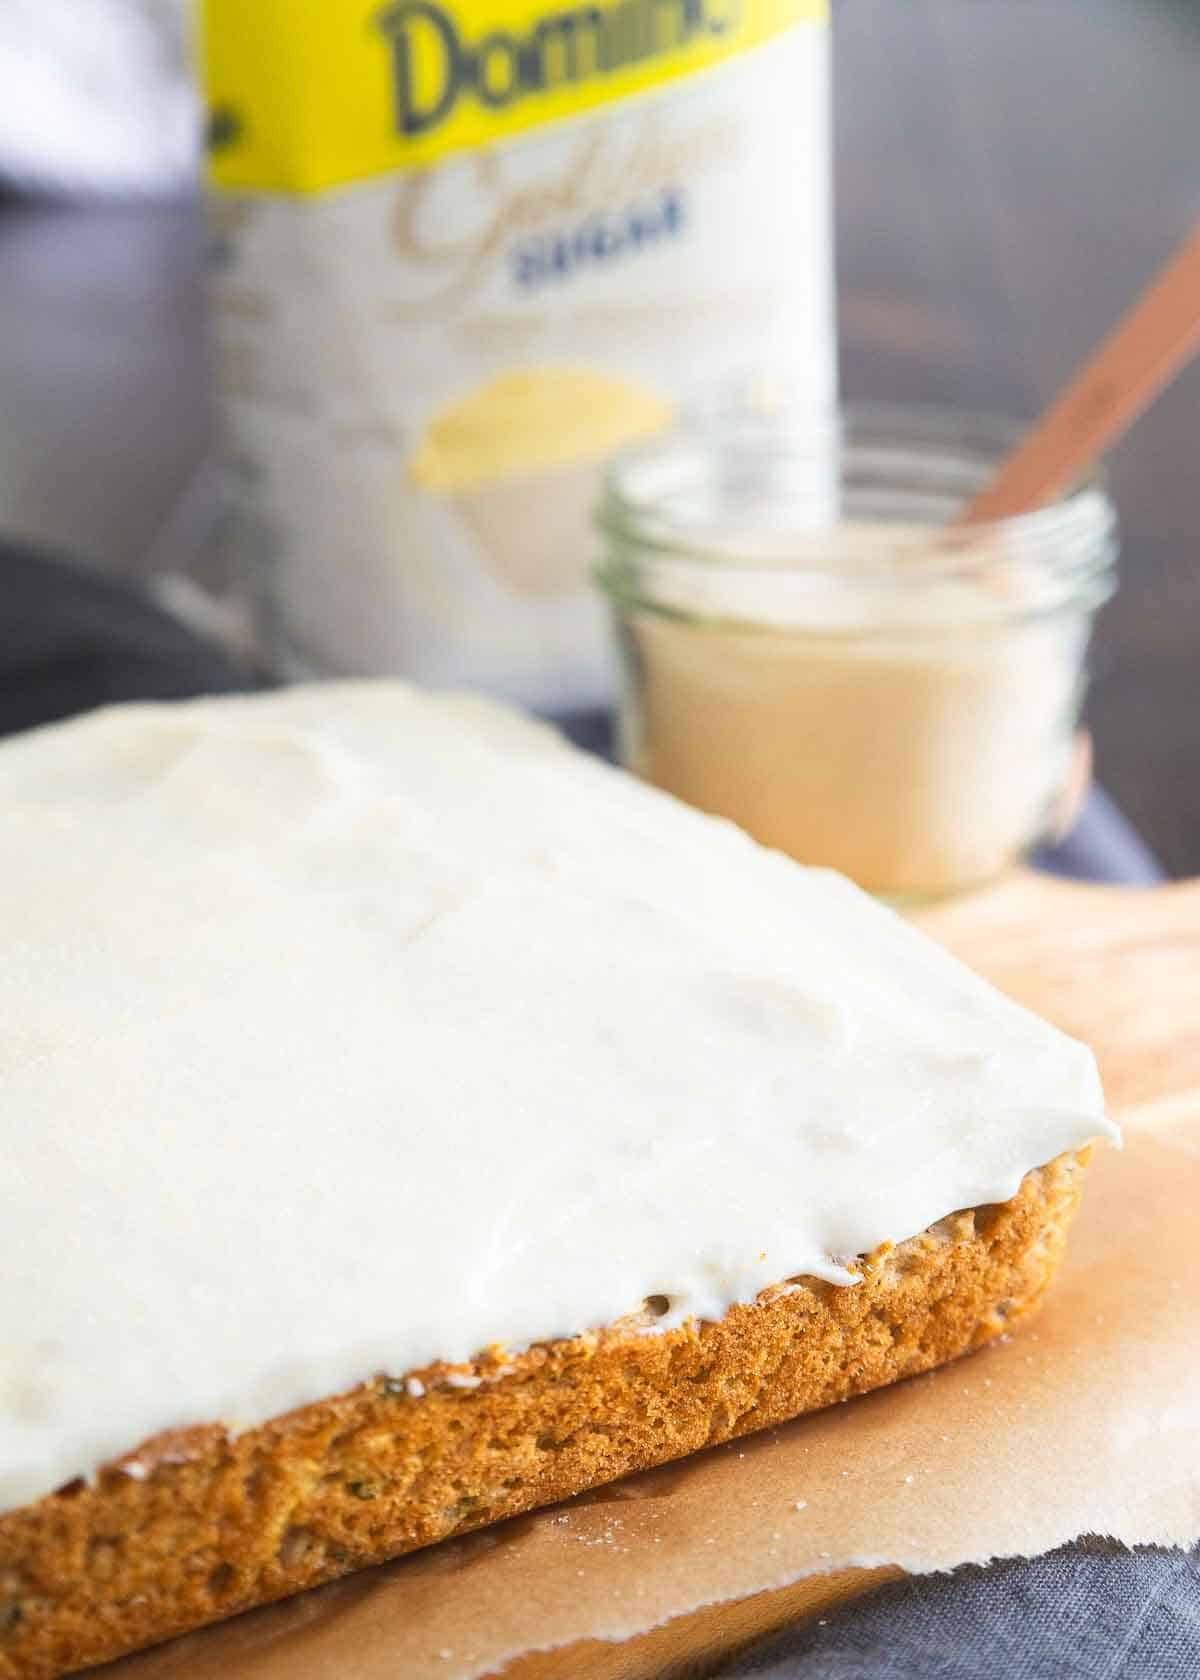 Zucchini bars with cream cheese frosting make a delicious snack or healthier dessert.